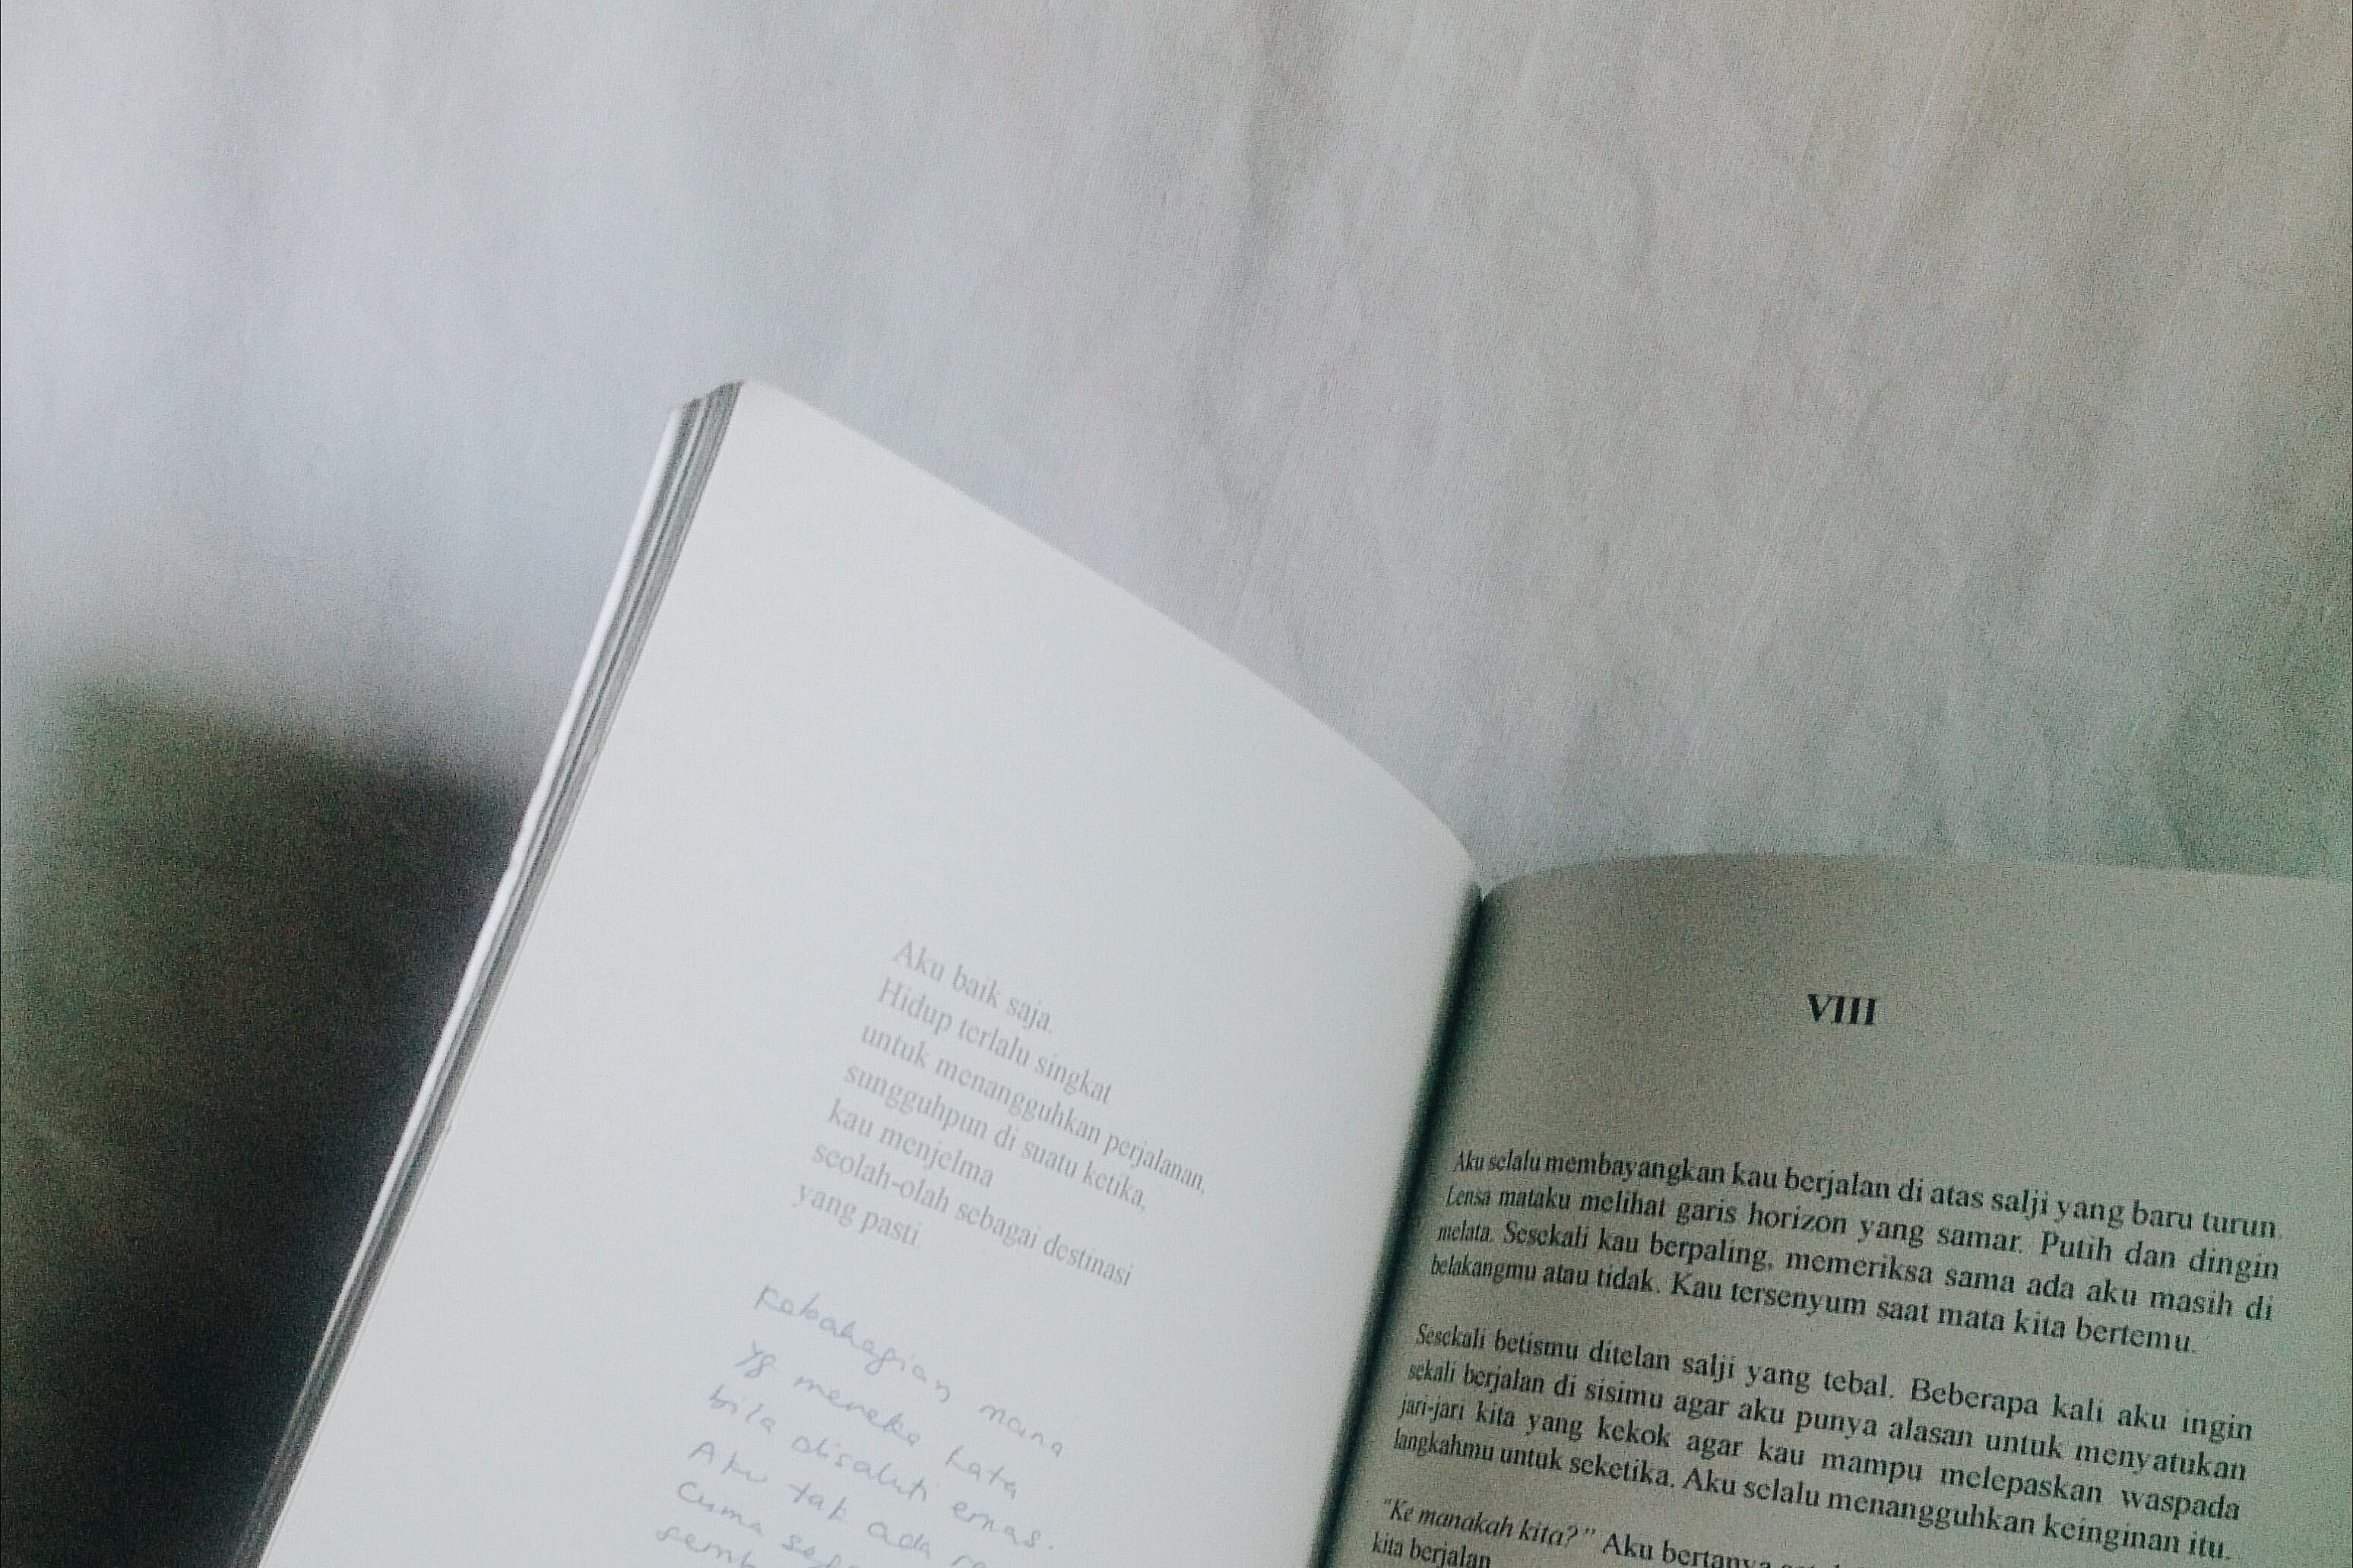 Monochrome Photo of Book